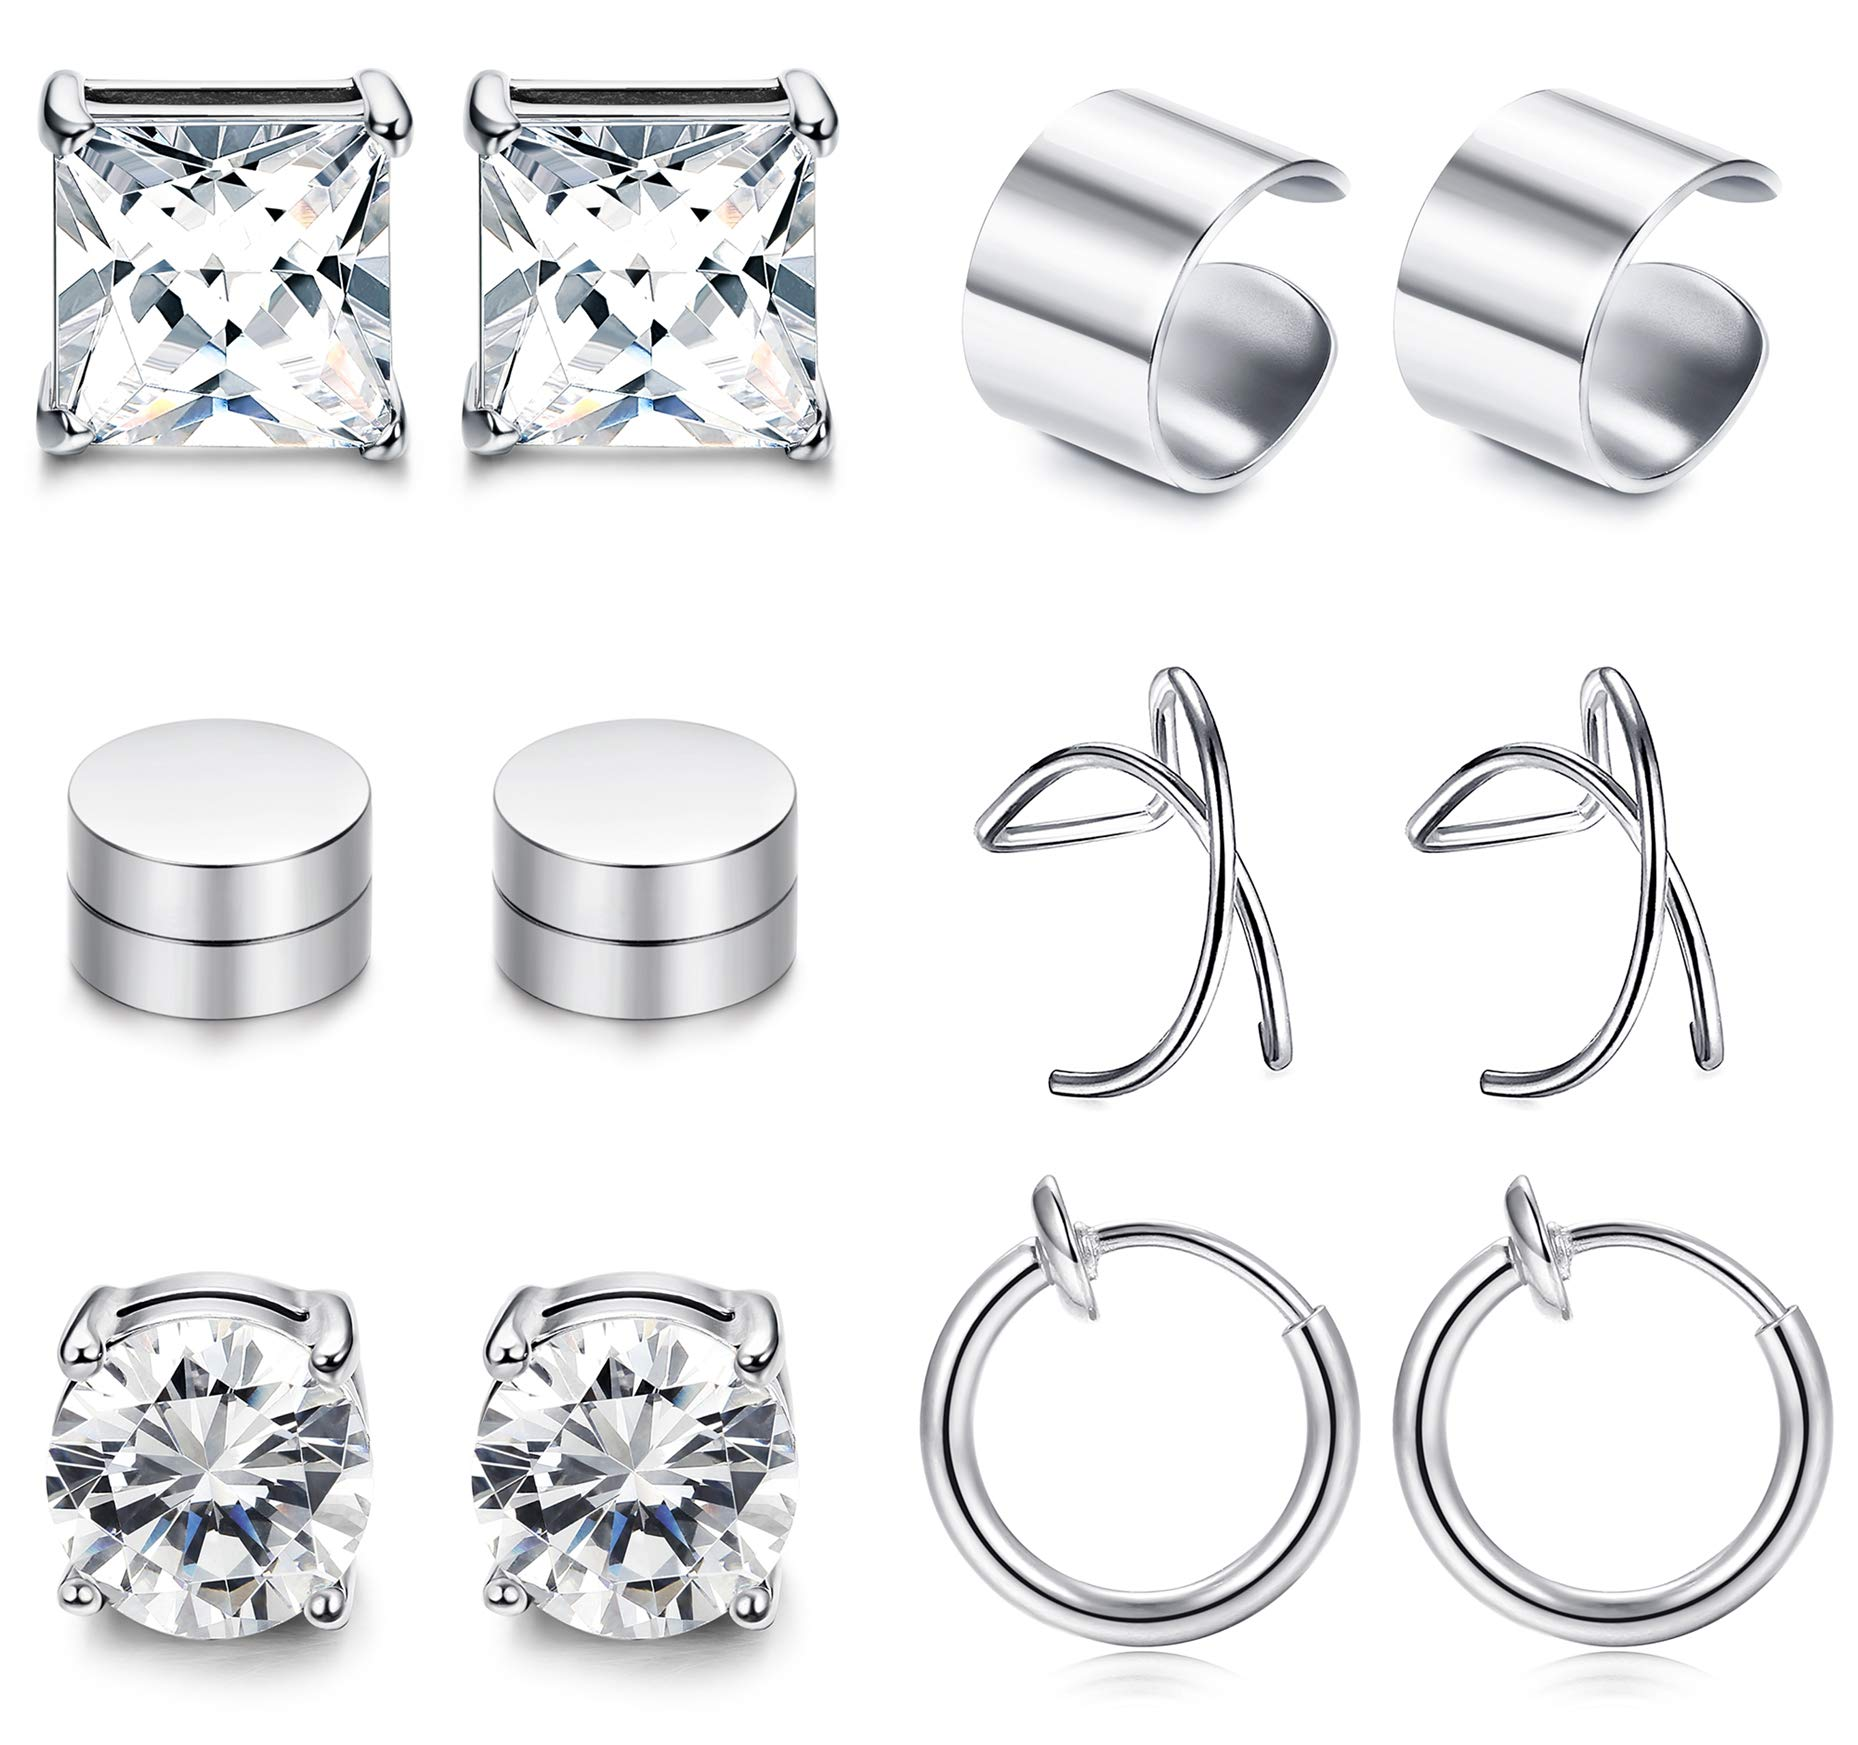 sailimue 6 Pairs Stainless Steel Magnetic Ear Cuff Earrings for Men Women Non Piercing Clip On Cartilage Stud Earrings…